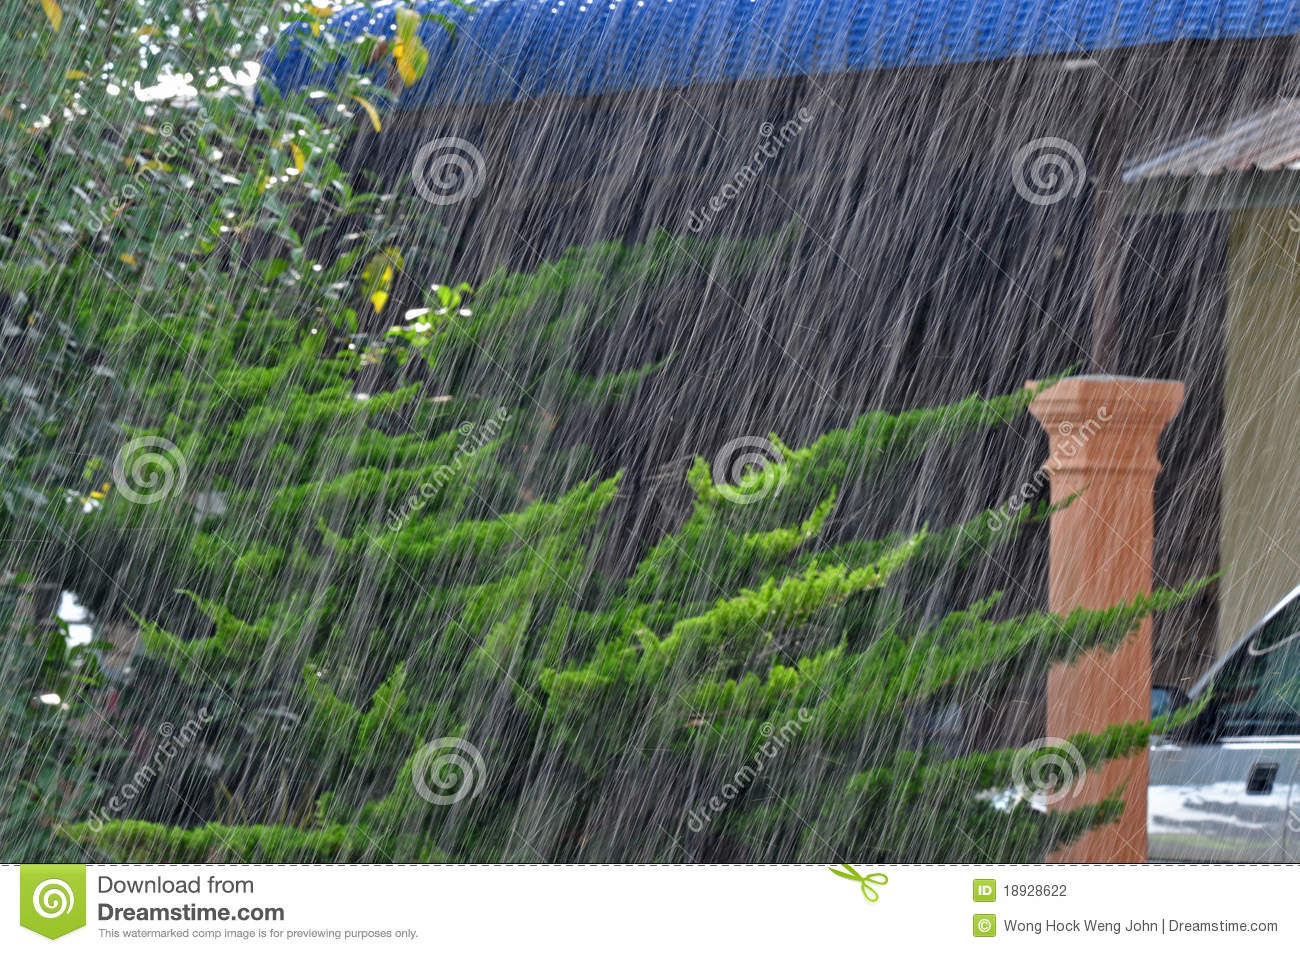 raining heavily Raining heavily quotes - 1 thinking is heavily endorsed read more quotes and sayings about raining heavily.